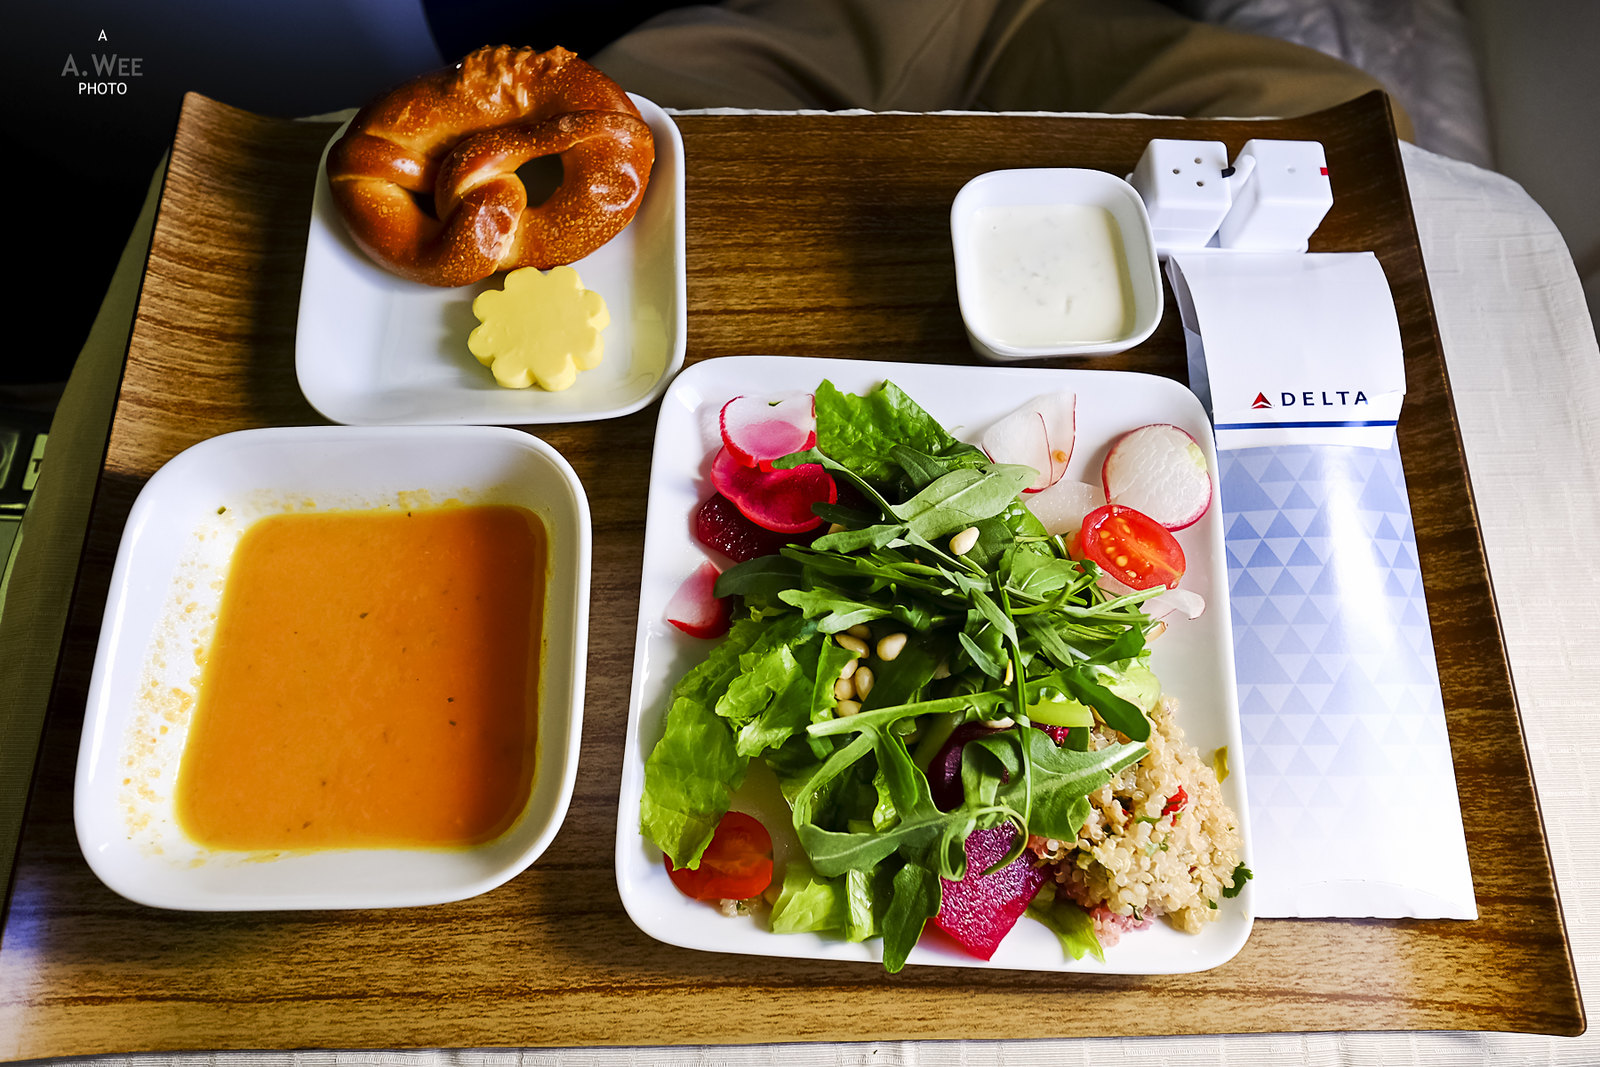 Salad, soup and pretzel